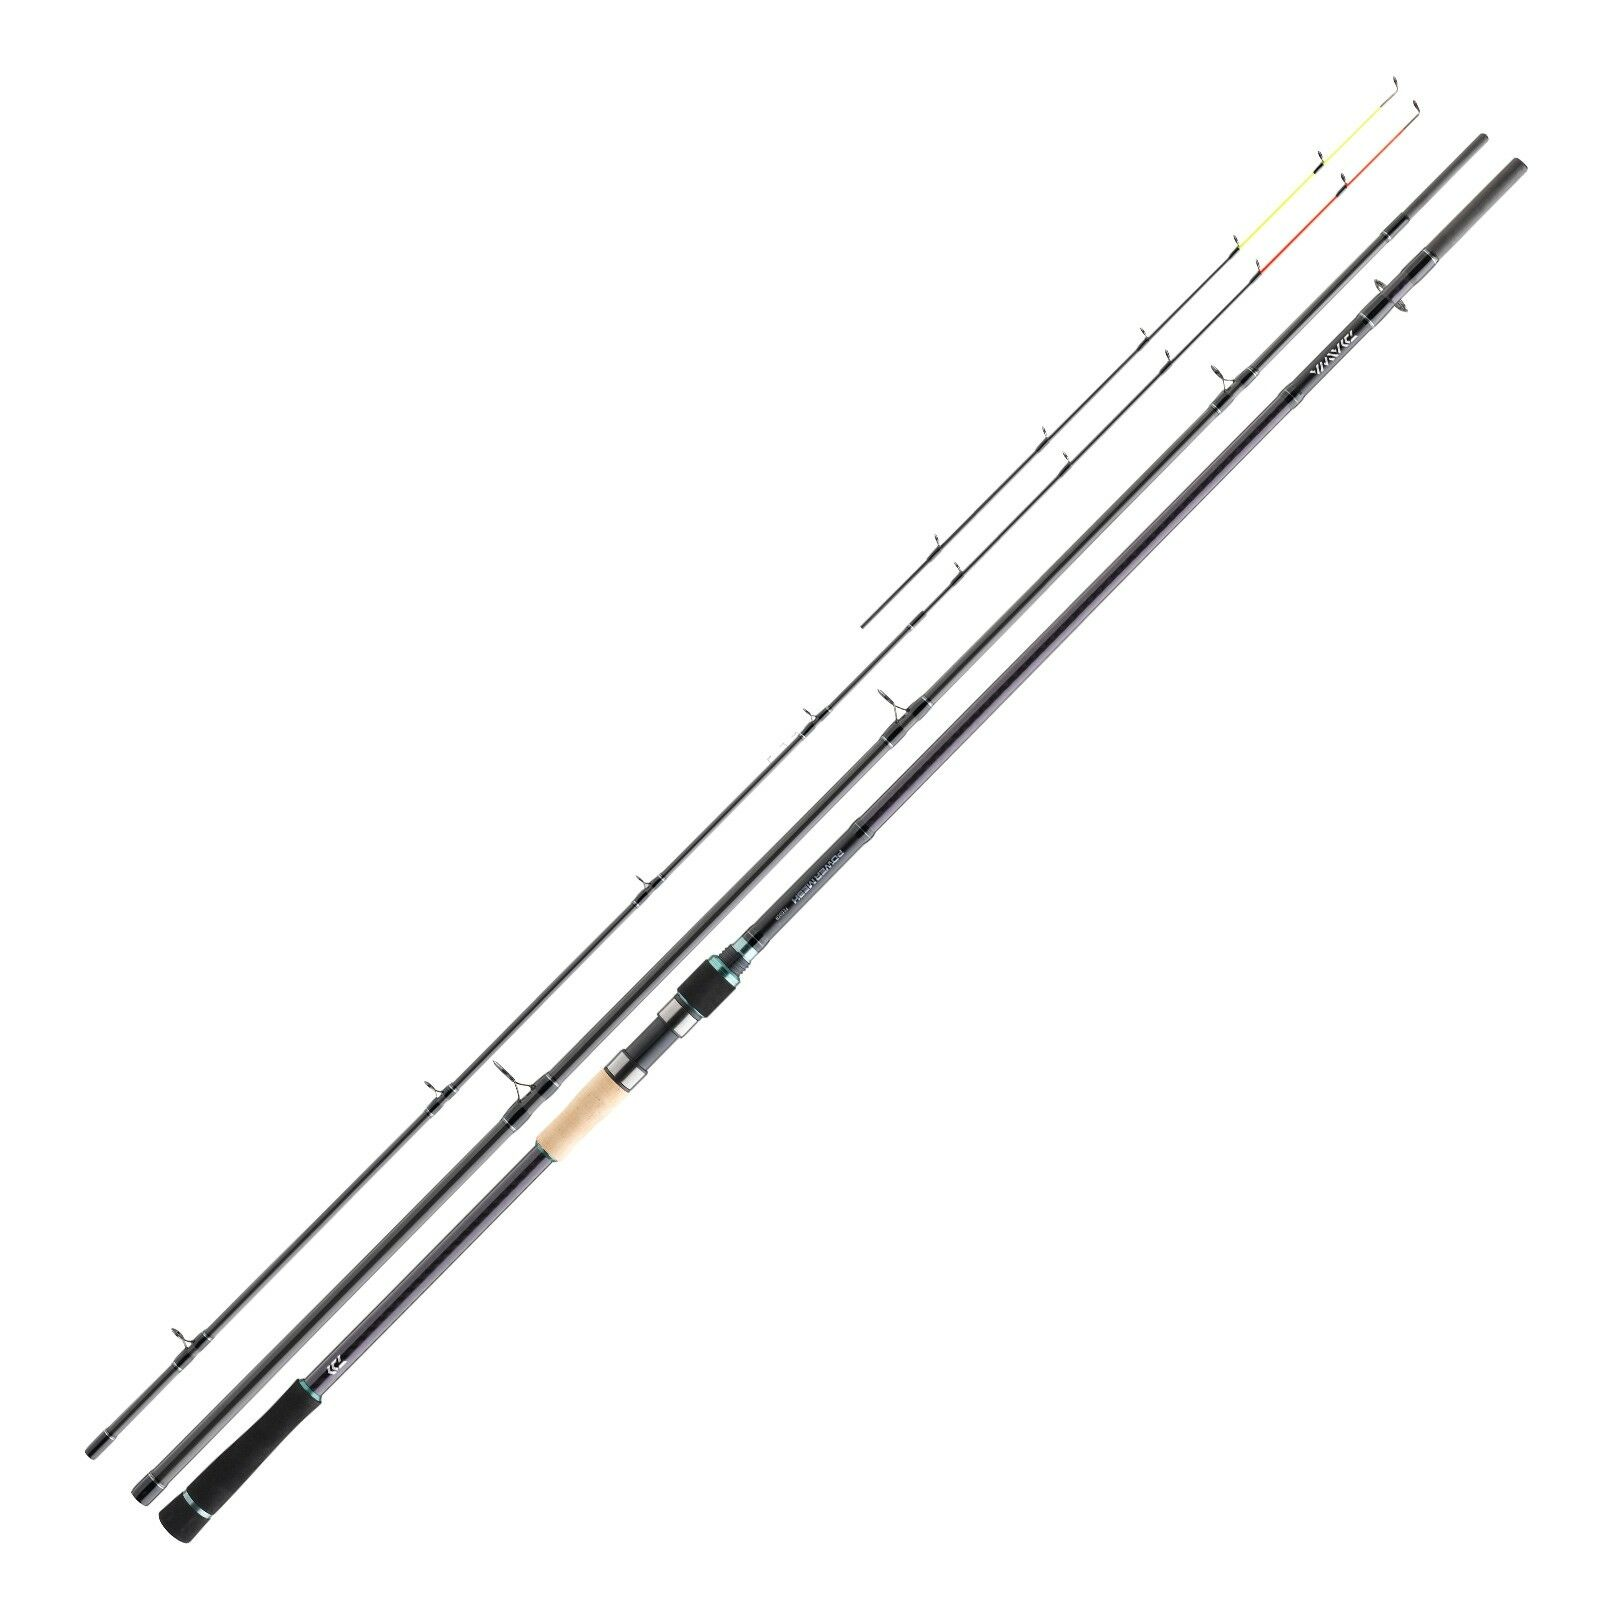 Daiwa Angelrute Feederrute - Powermesh Heavy 3,60m 150g